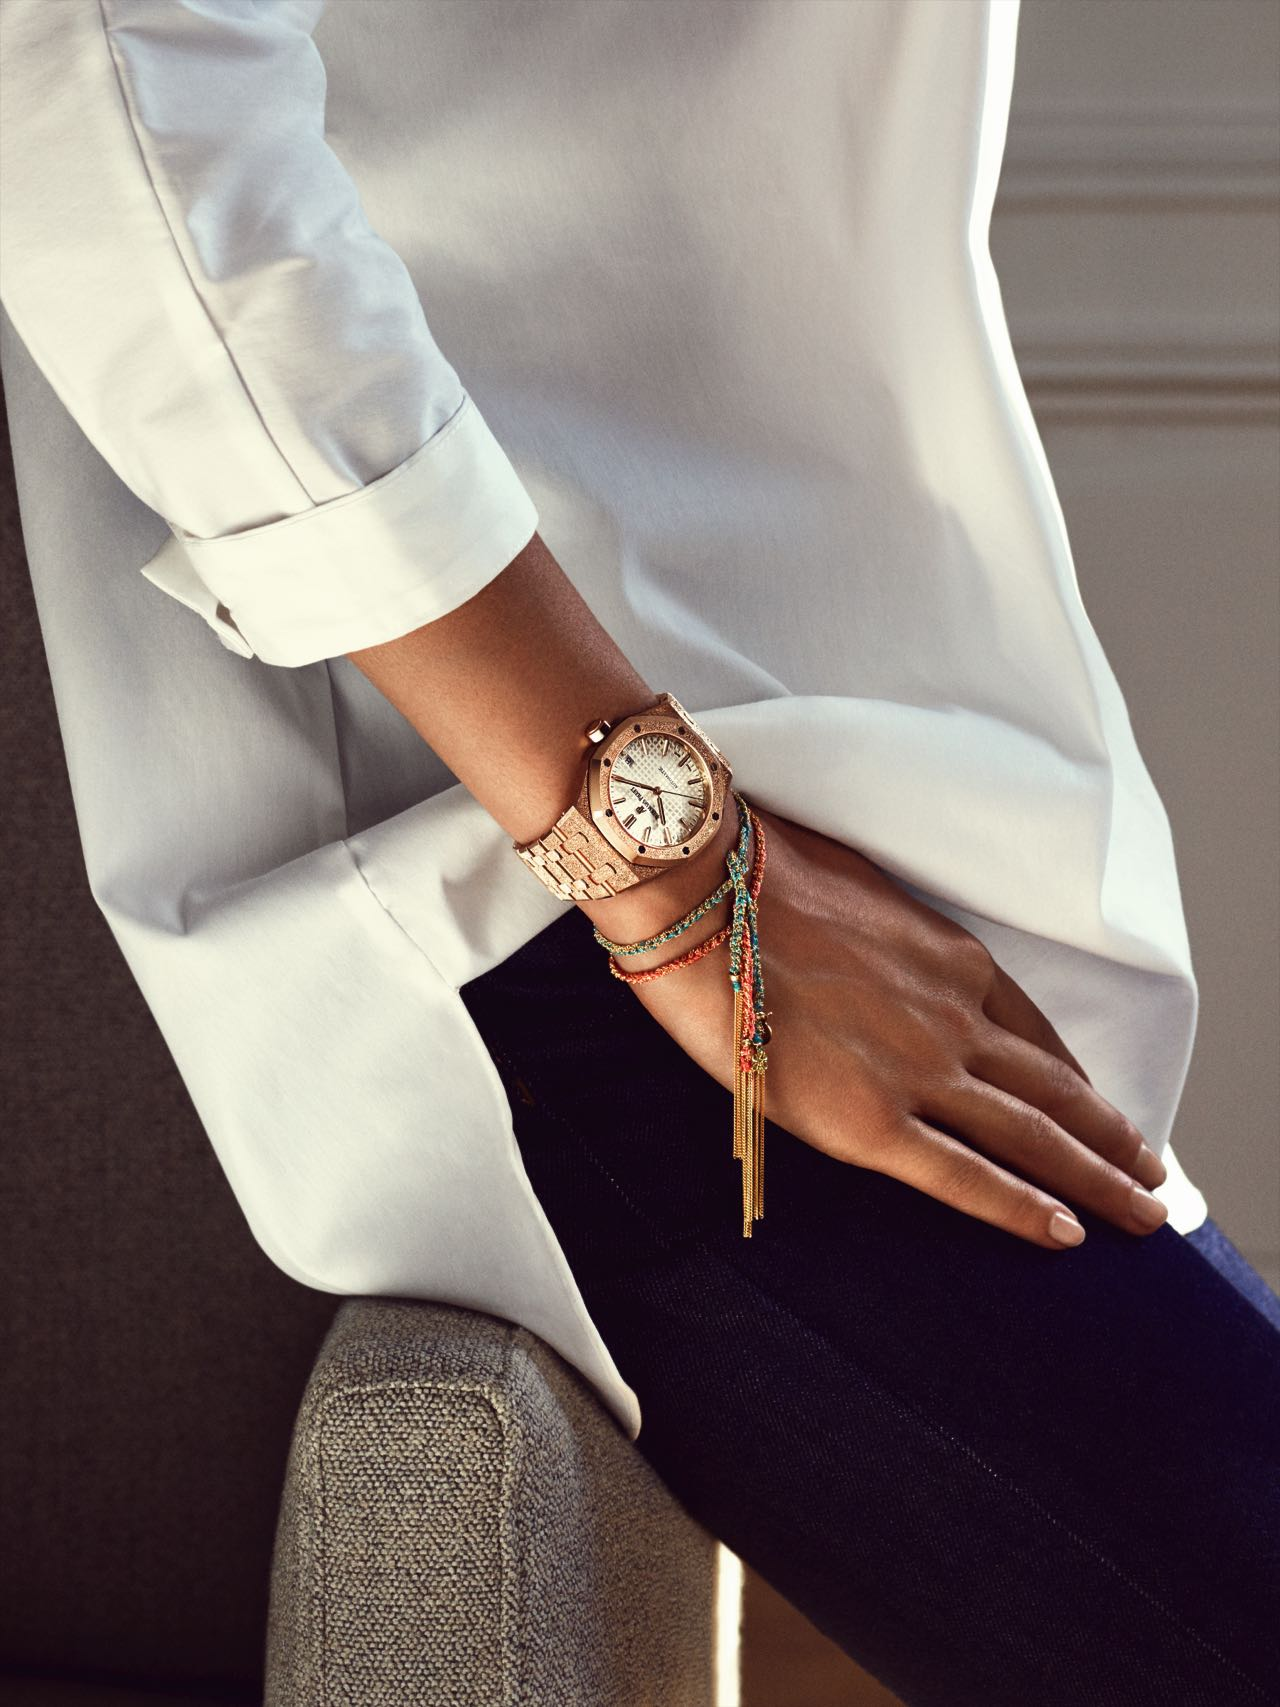 6b90bd20d The merger of Jacqueline Dimier's timeless design with Carolina Bucci's  contemporary approach in the Audemars Piguet Royal Oak for women marks a  dazzling ...